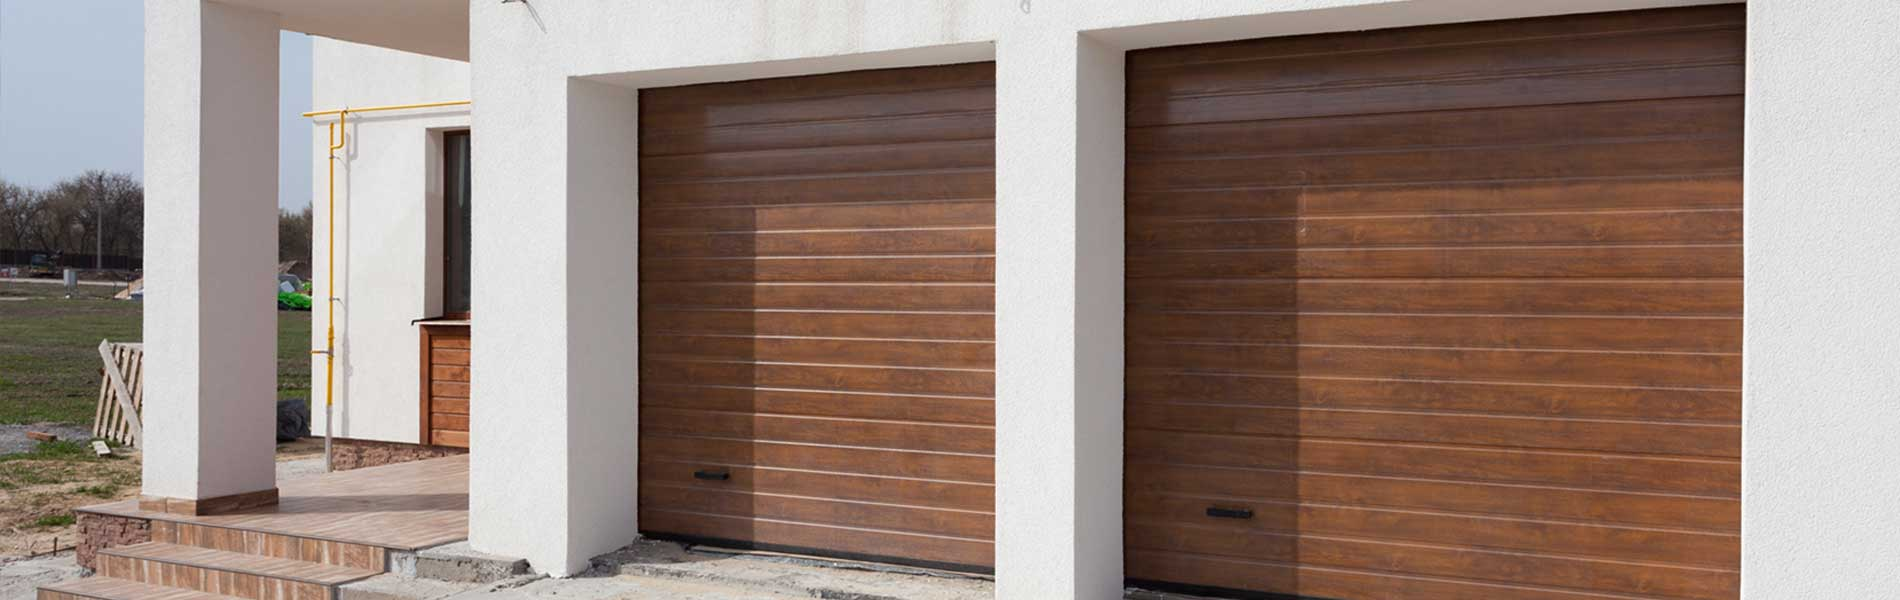 Elite Garage Door Service, Alexandria, VA 571-267-1141